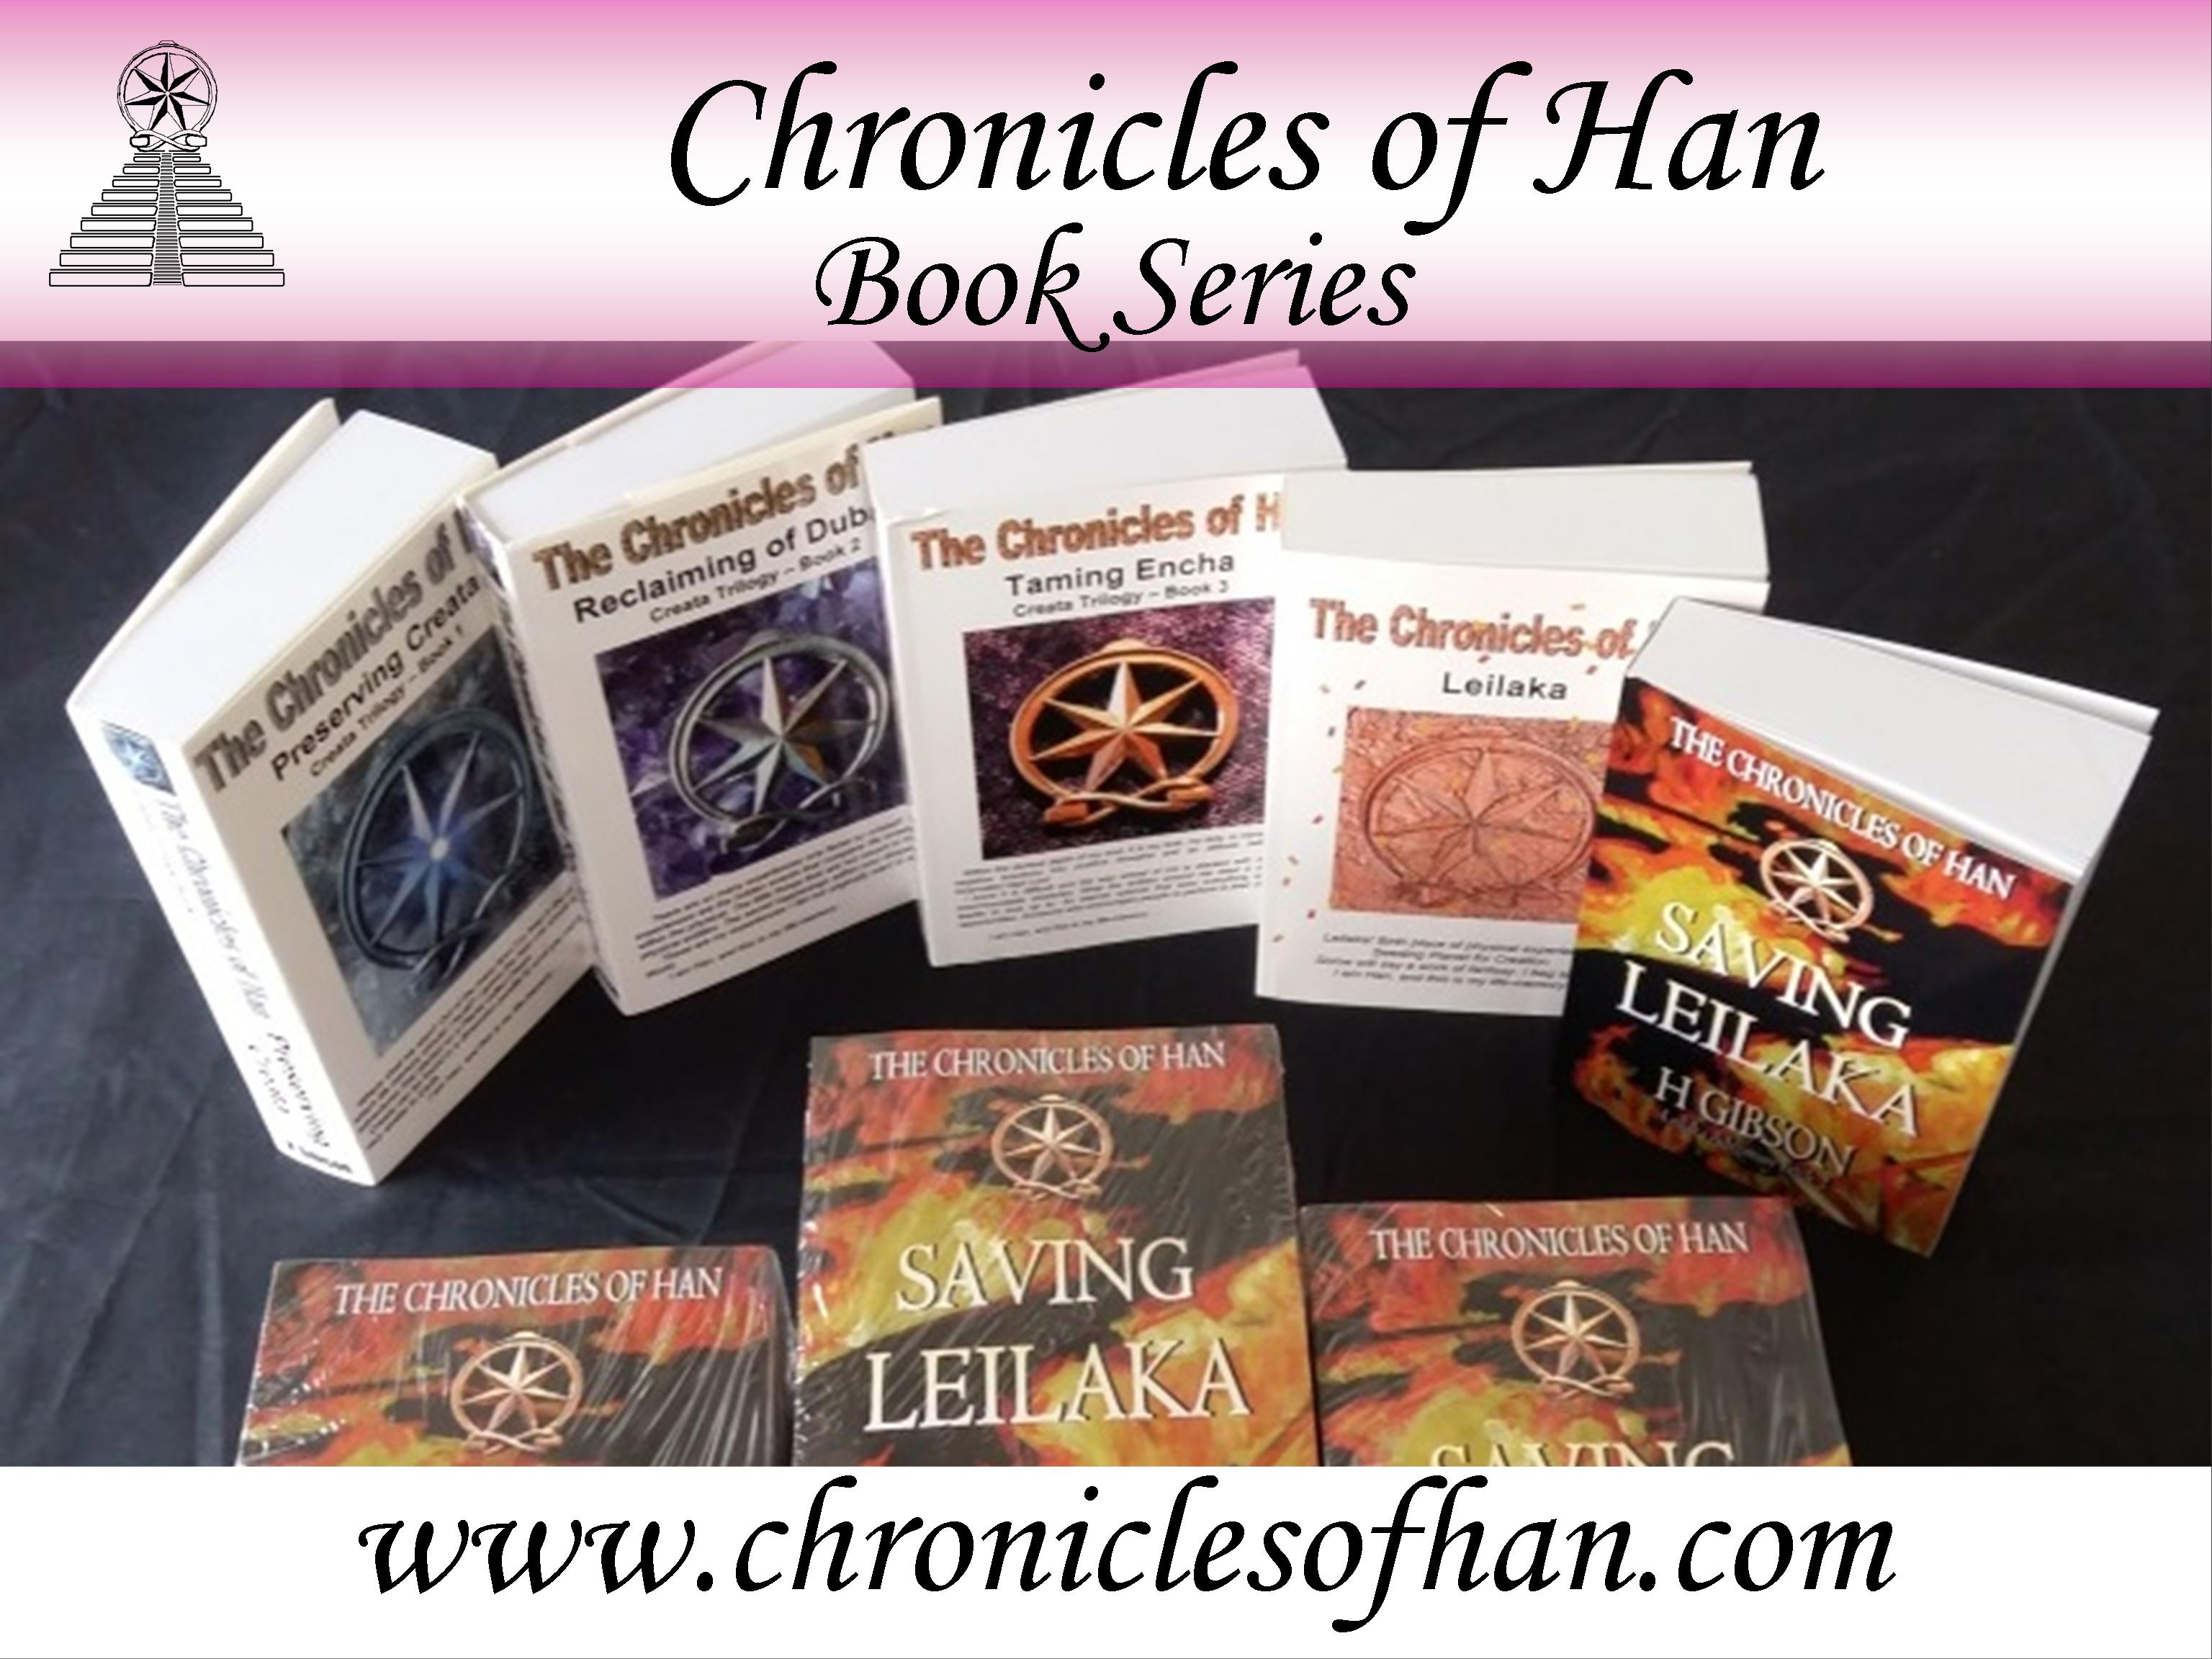 00 Chronicles of Han Book Series